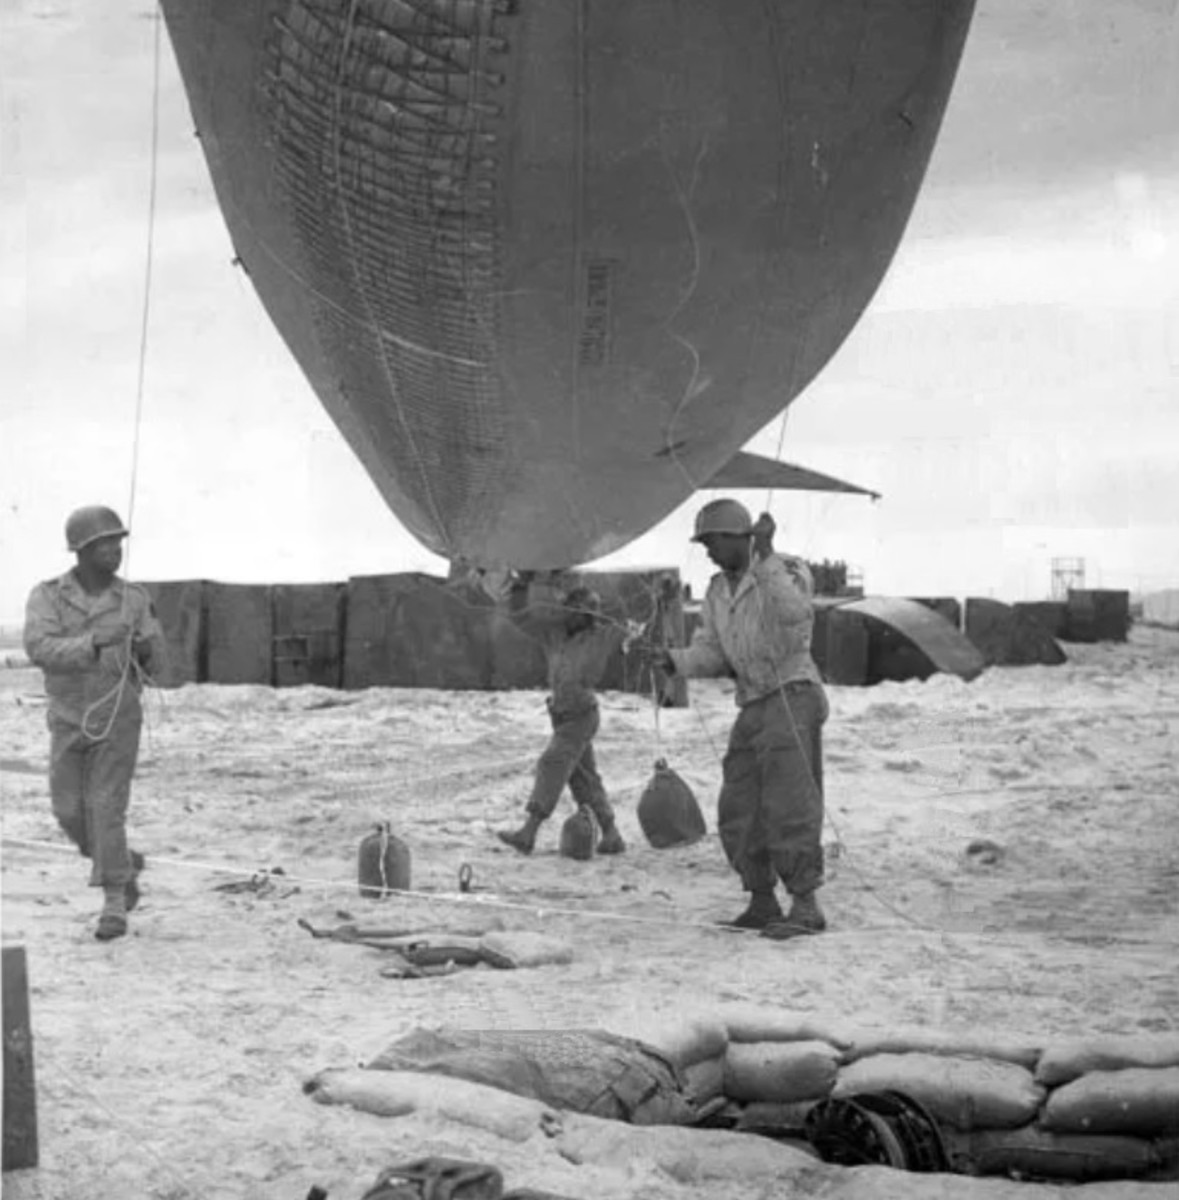 Soldiers of the 320th launch a barrage balloon on Omaha Beach on D-Day.